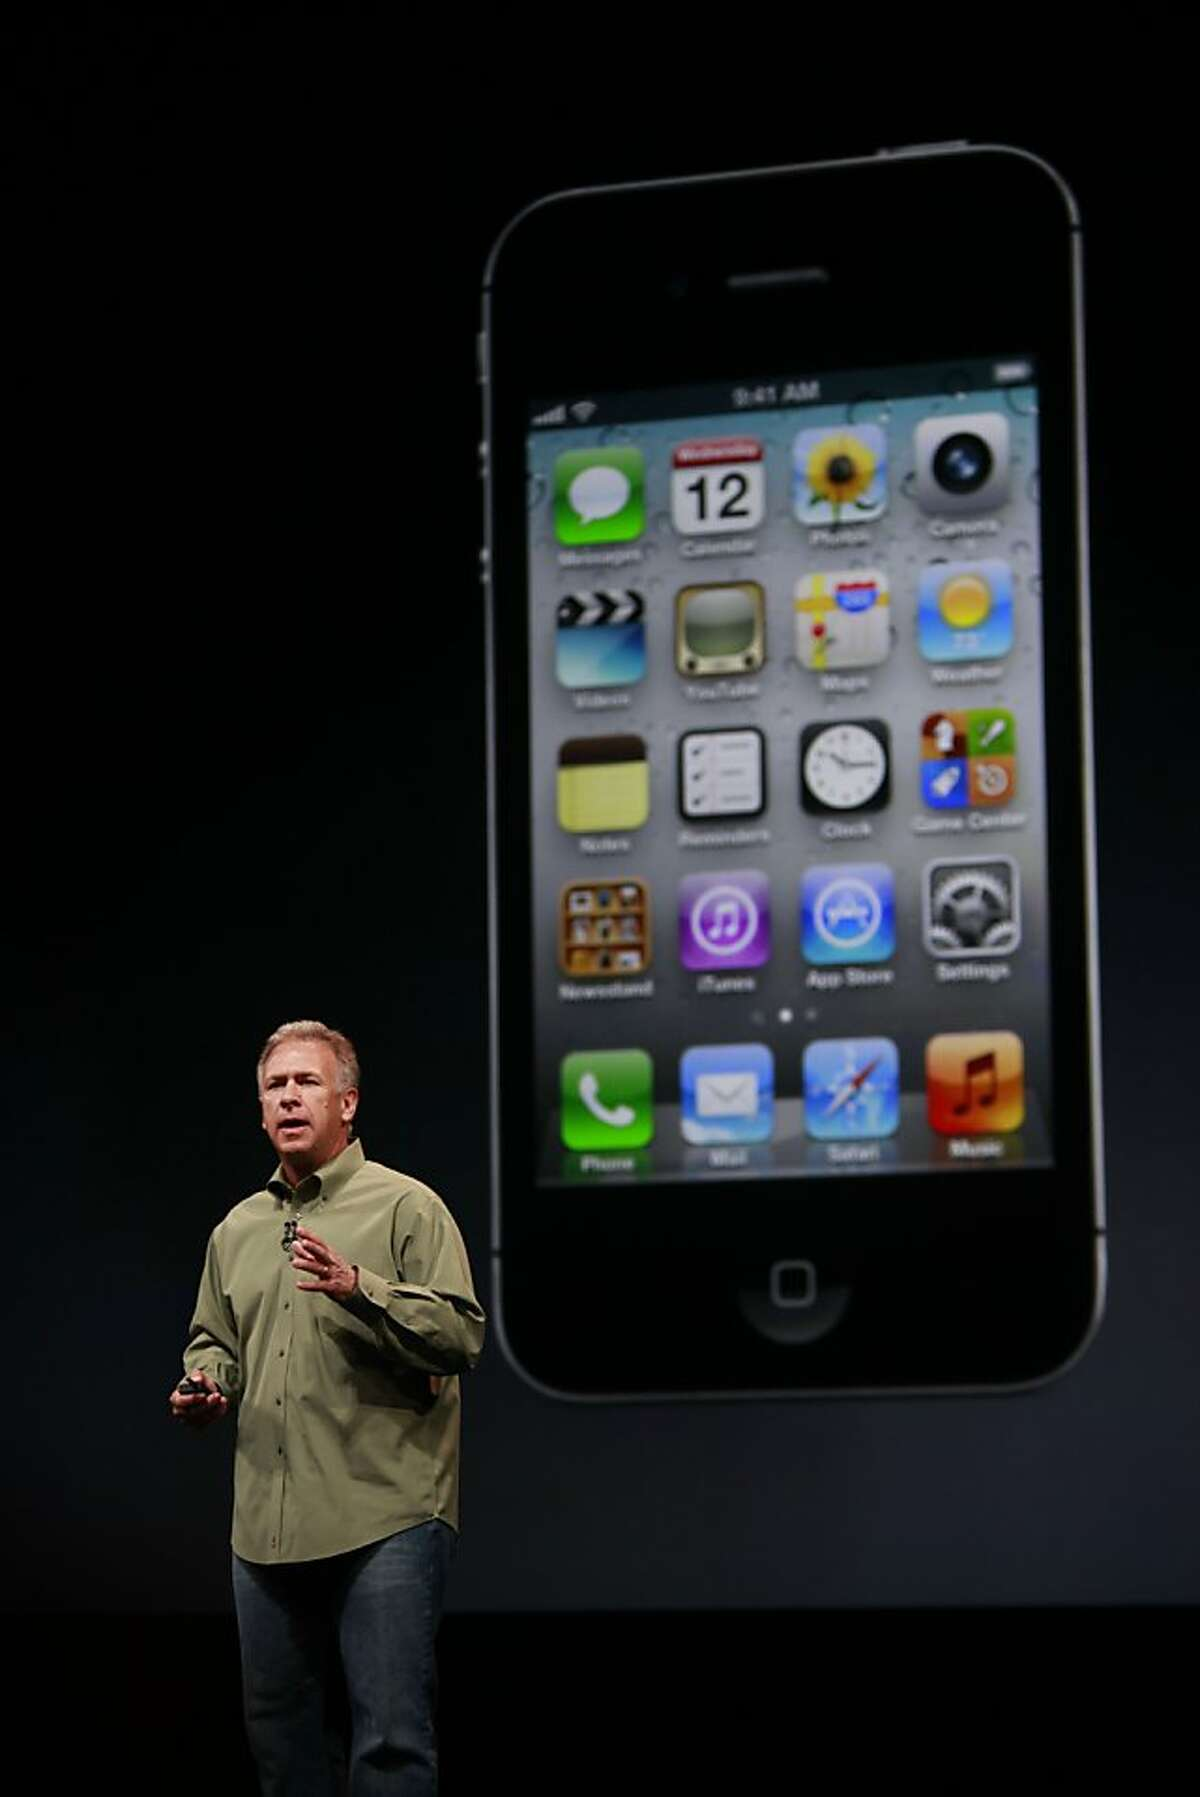 Apple's senior vice president of Worldwide Marketing, Philip Schiller introduces the new iPhone 5 at the Yerba Buena Center for the Arts on Wednesday Sep. 12, 2012 in San Francisco, Calif. The new phone features a larger screen a faster network and an updated operating system called iOS6.